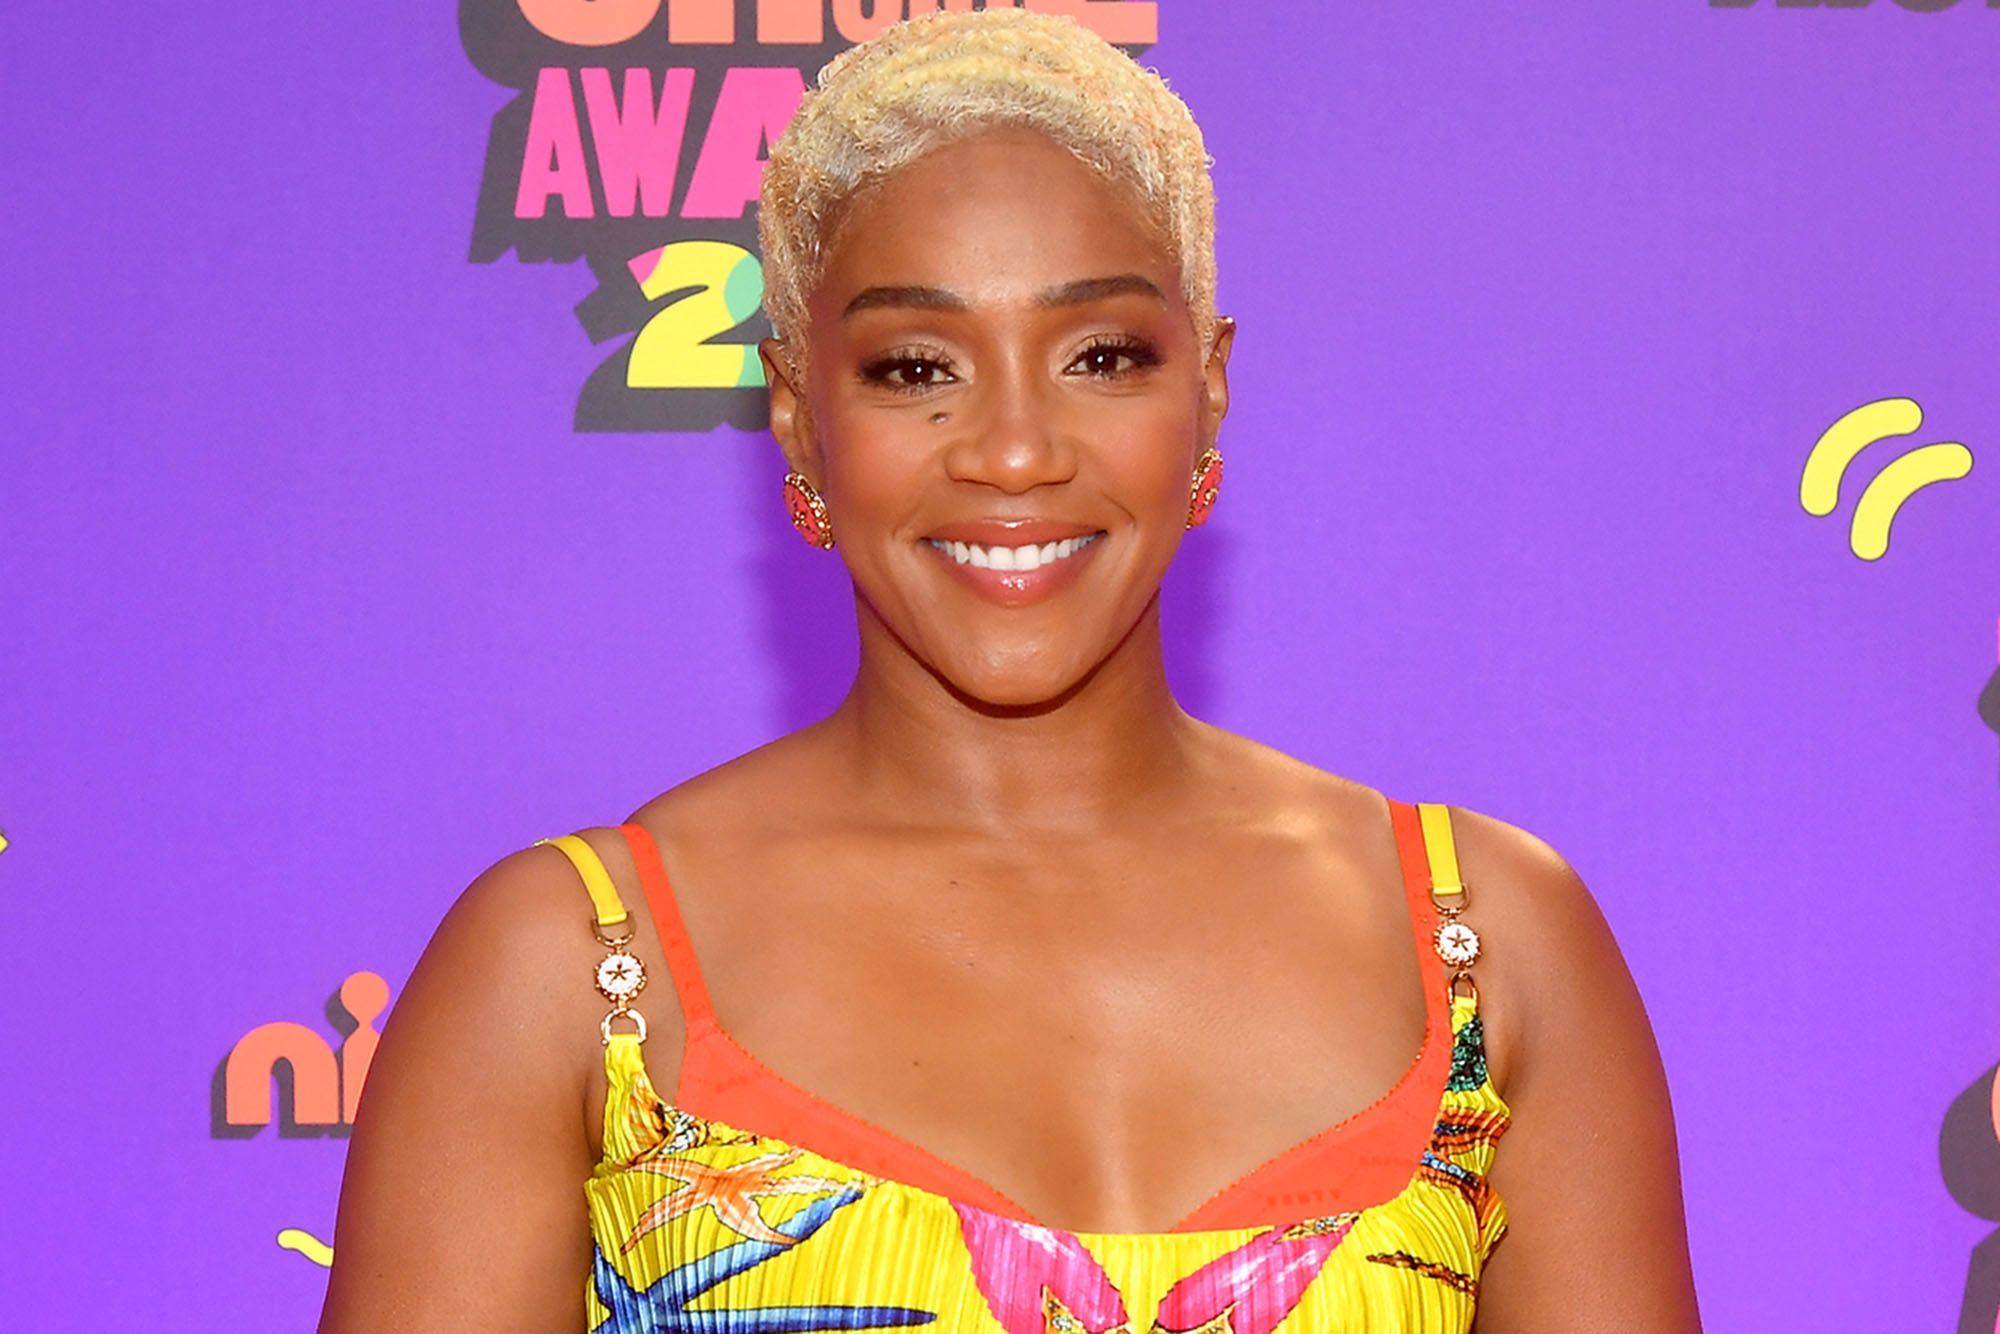 Tiffany Haddish on Play Flo-Jo: 'My Legs Are Going to Be Amazing!'